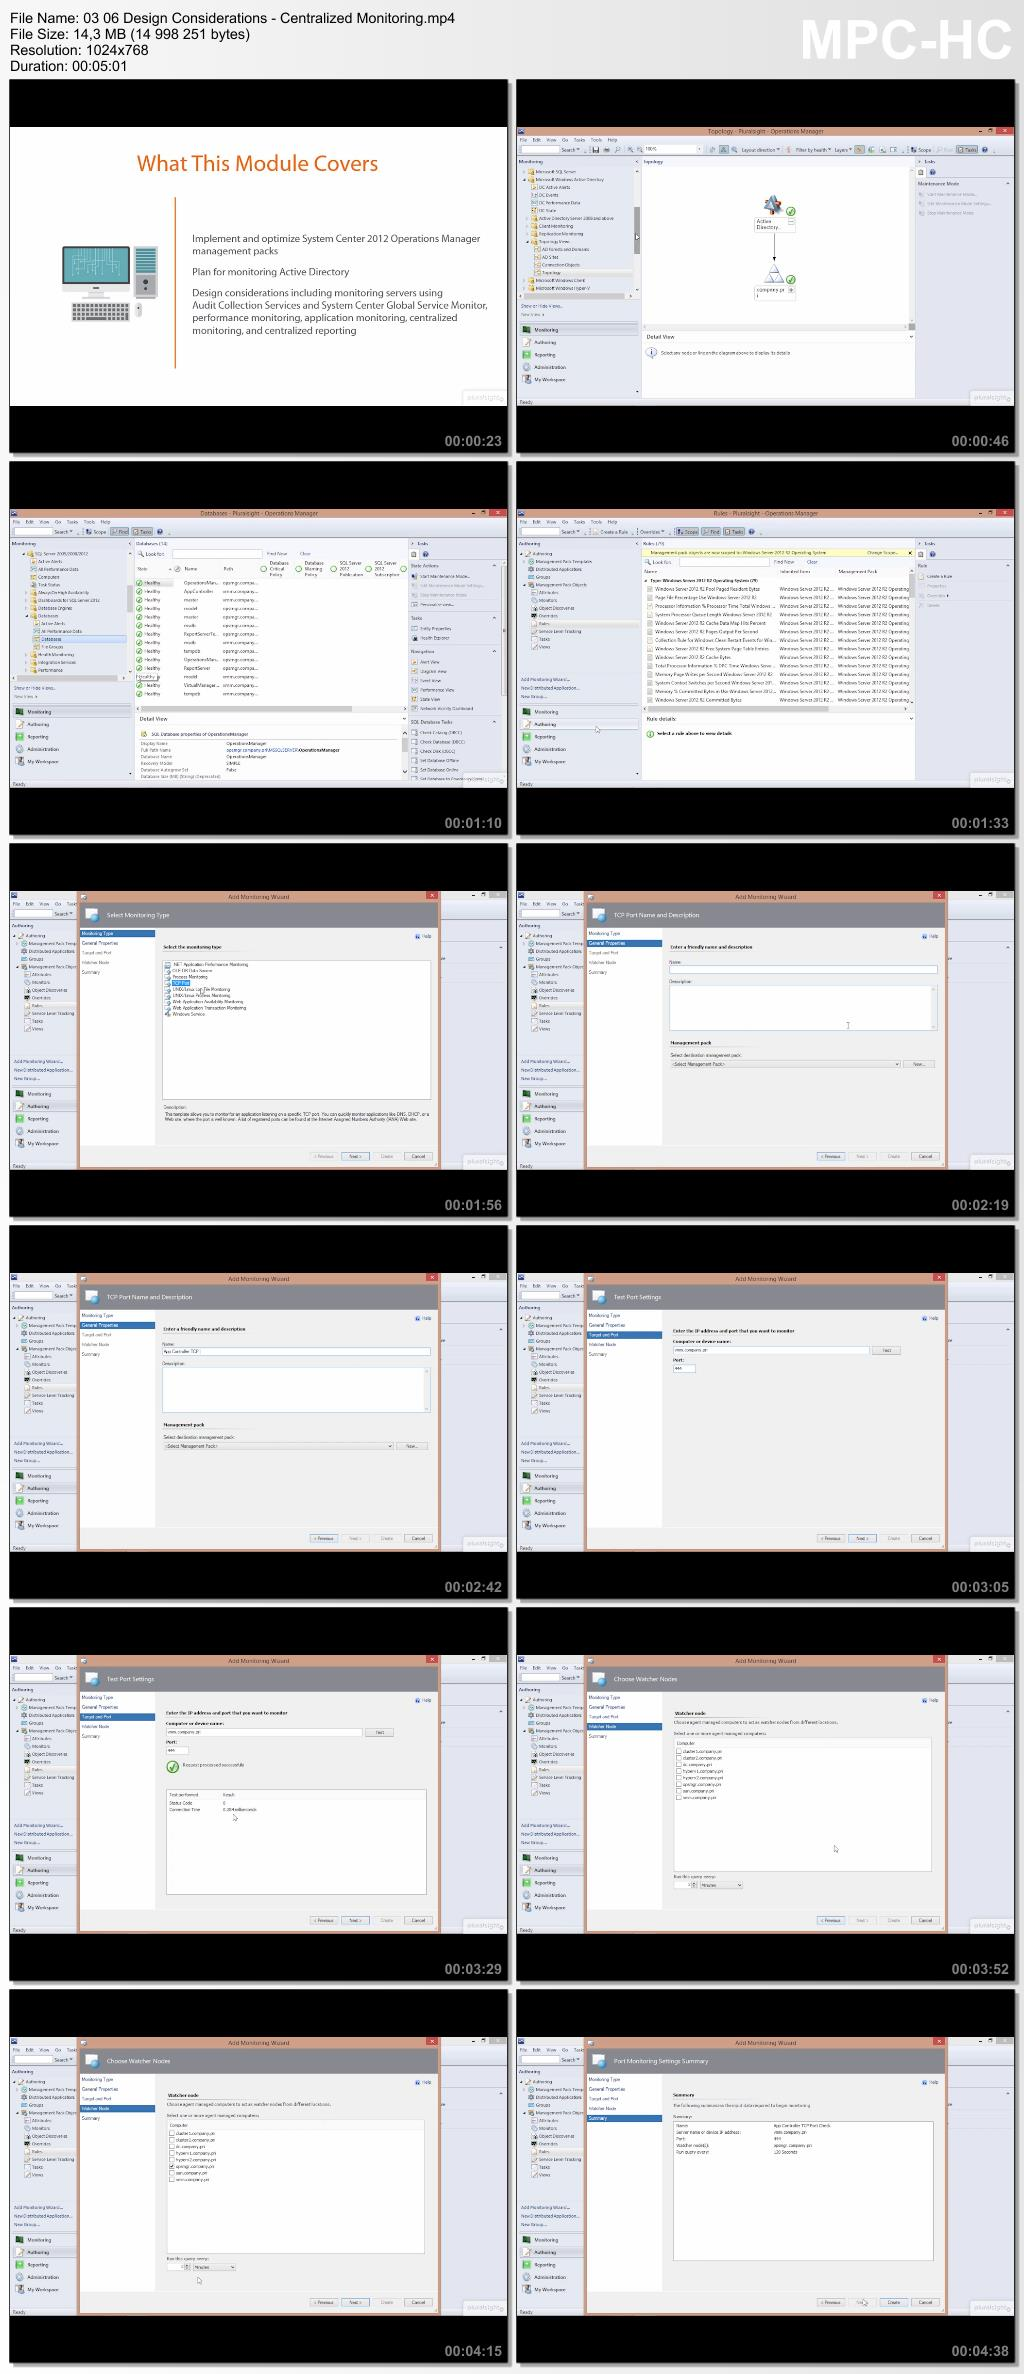 Pxxx - Windows Server 2012 R2 (70-414) Server Infrastructure